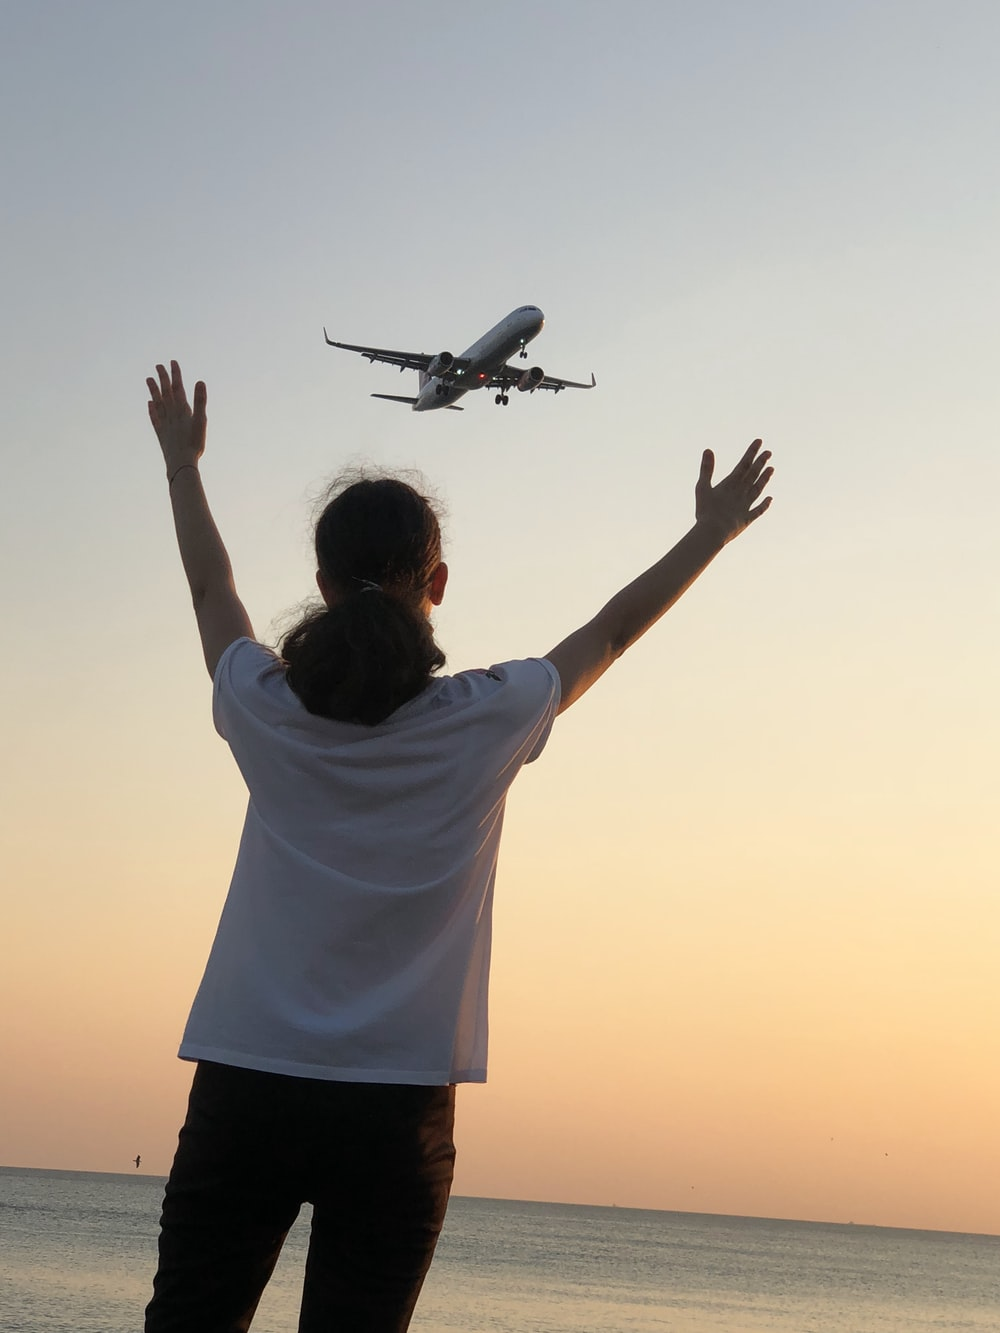 man in white shirt and black shorts holding white airplane